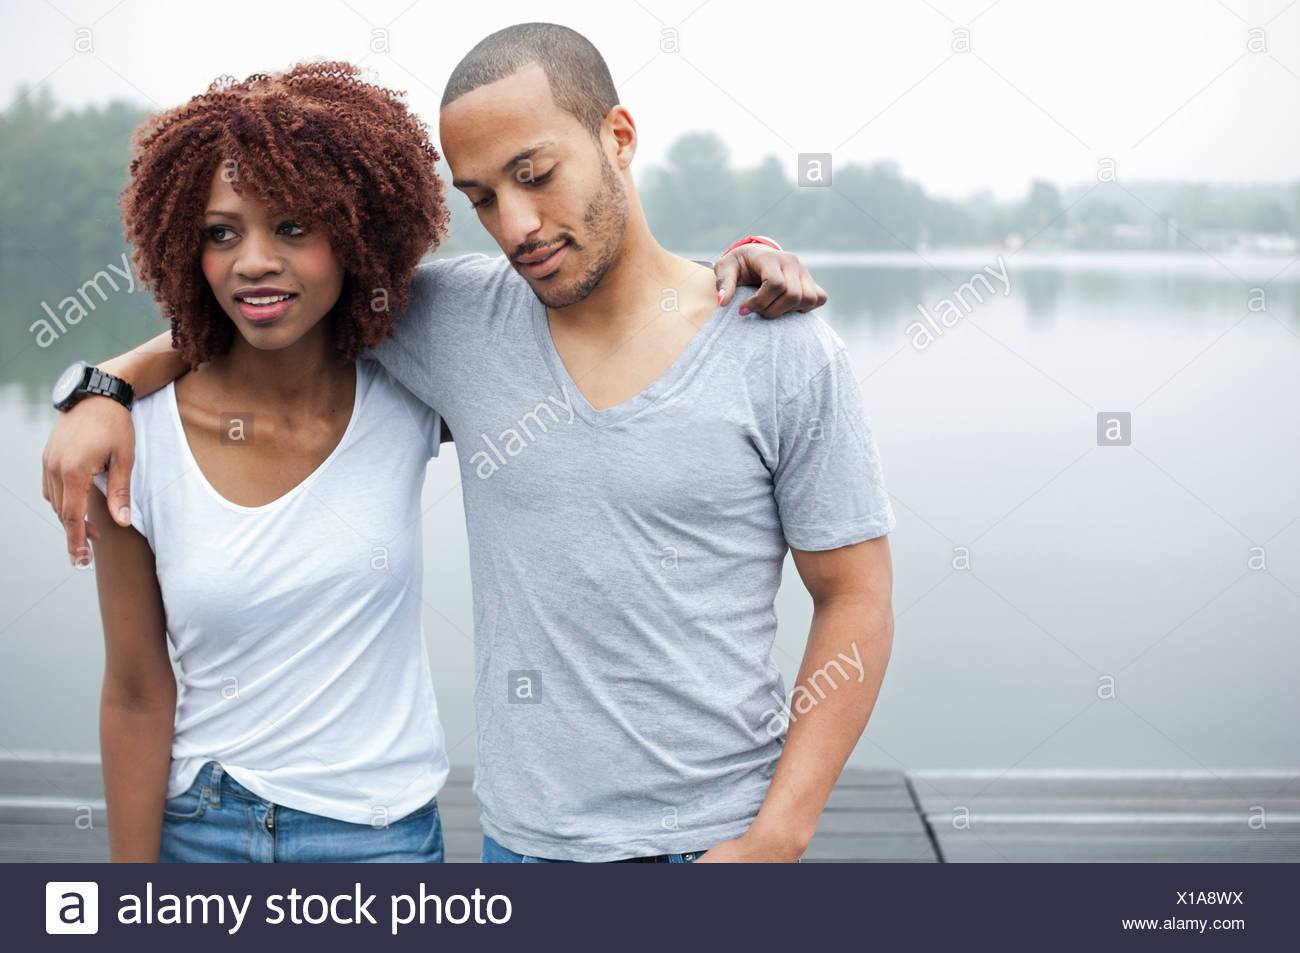 Portrait of young couple by lake with arms around each other - Stock Image